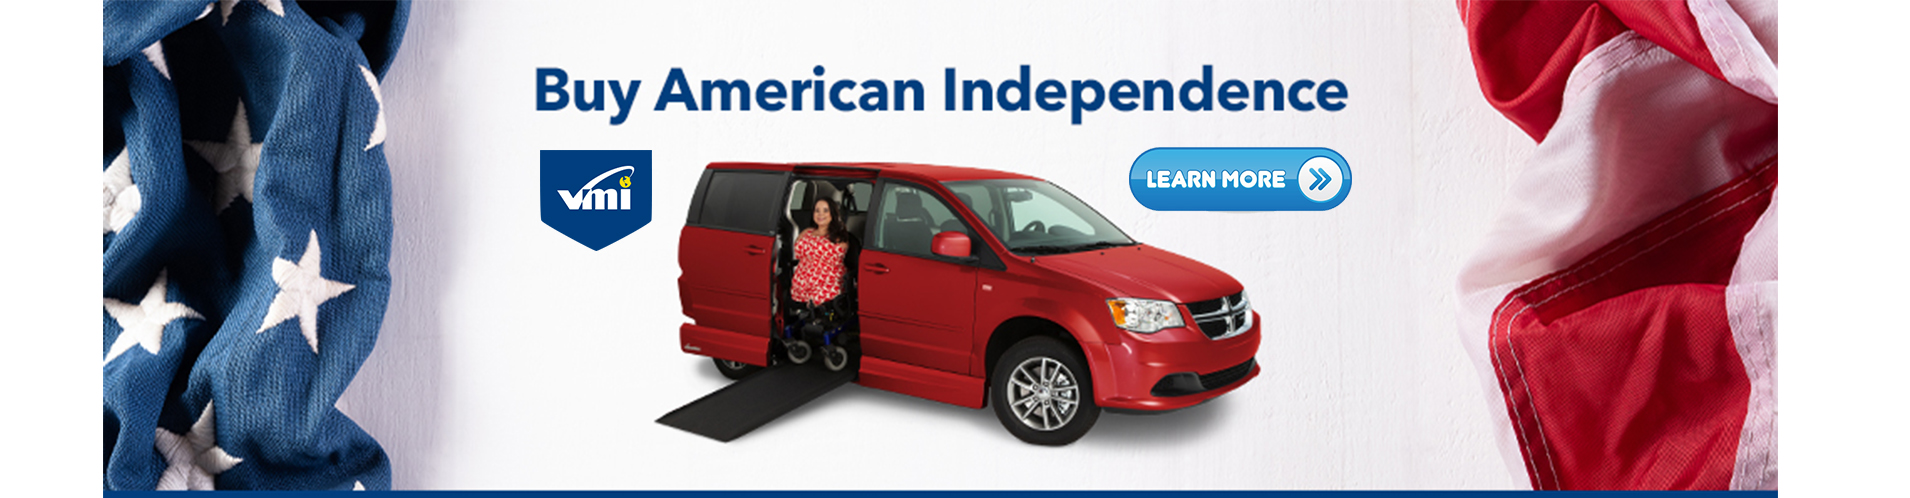 Homepage Slider Buy American Independence1